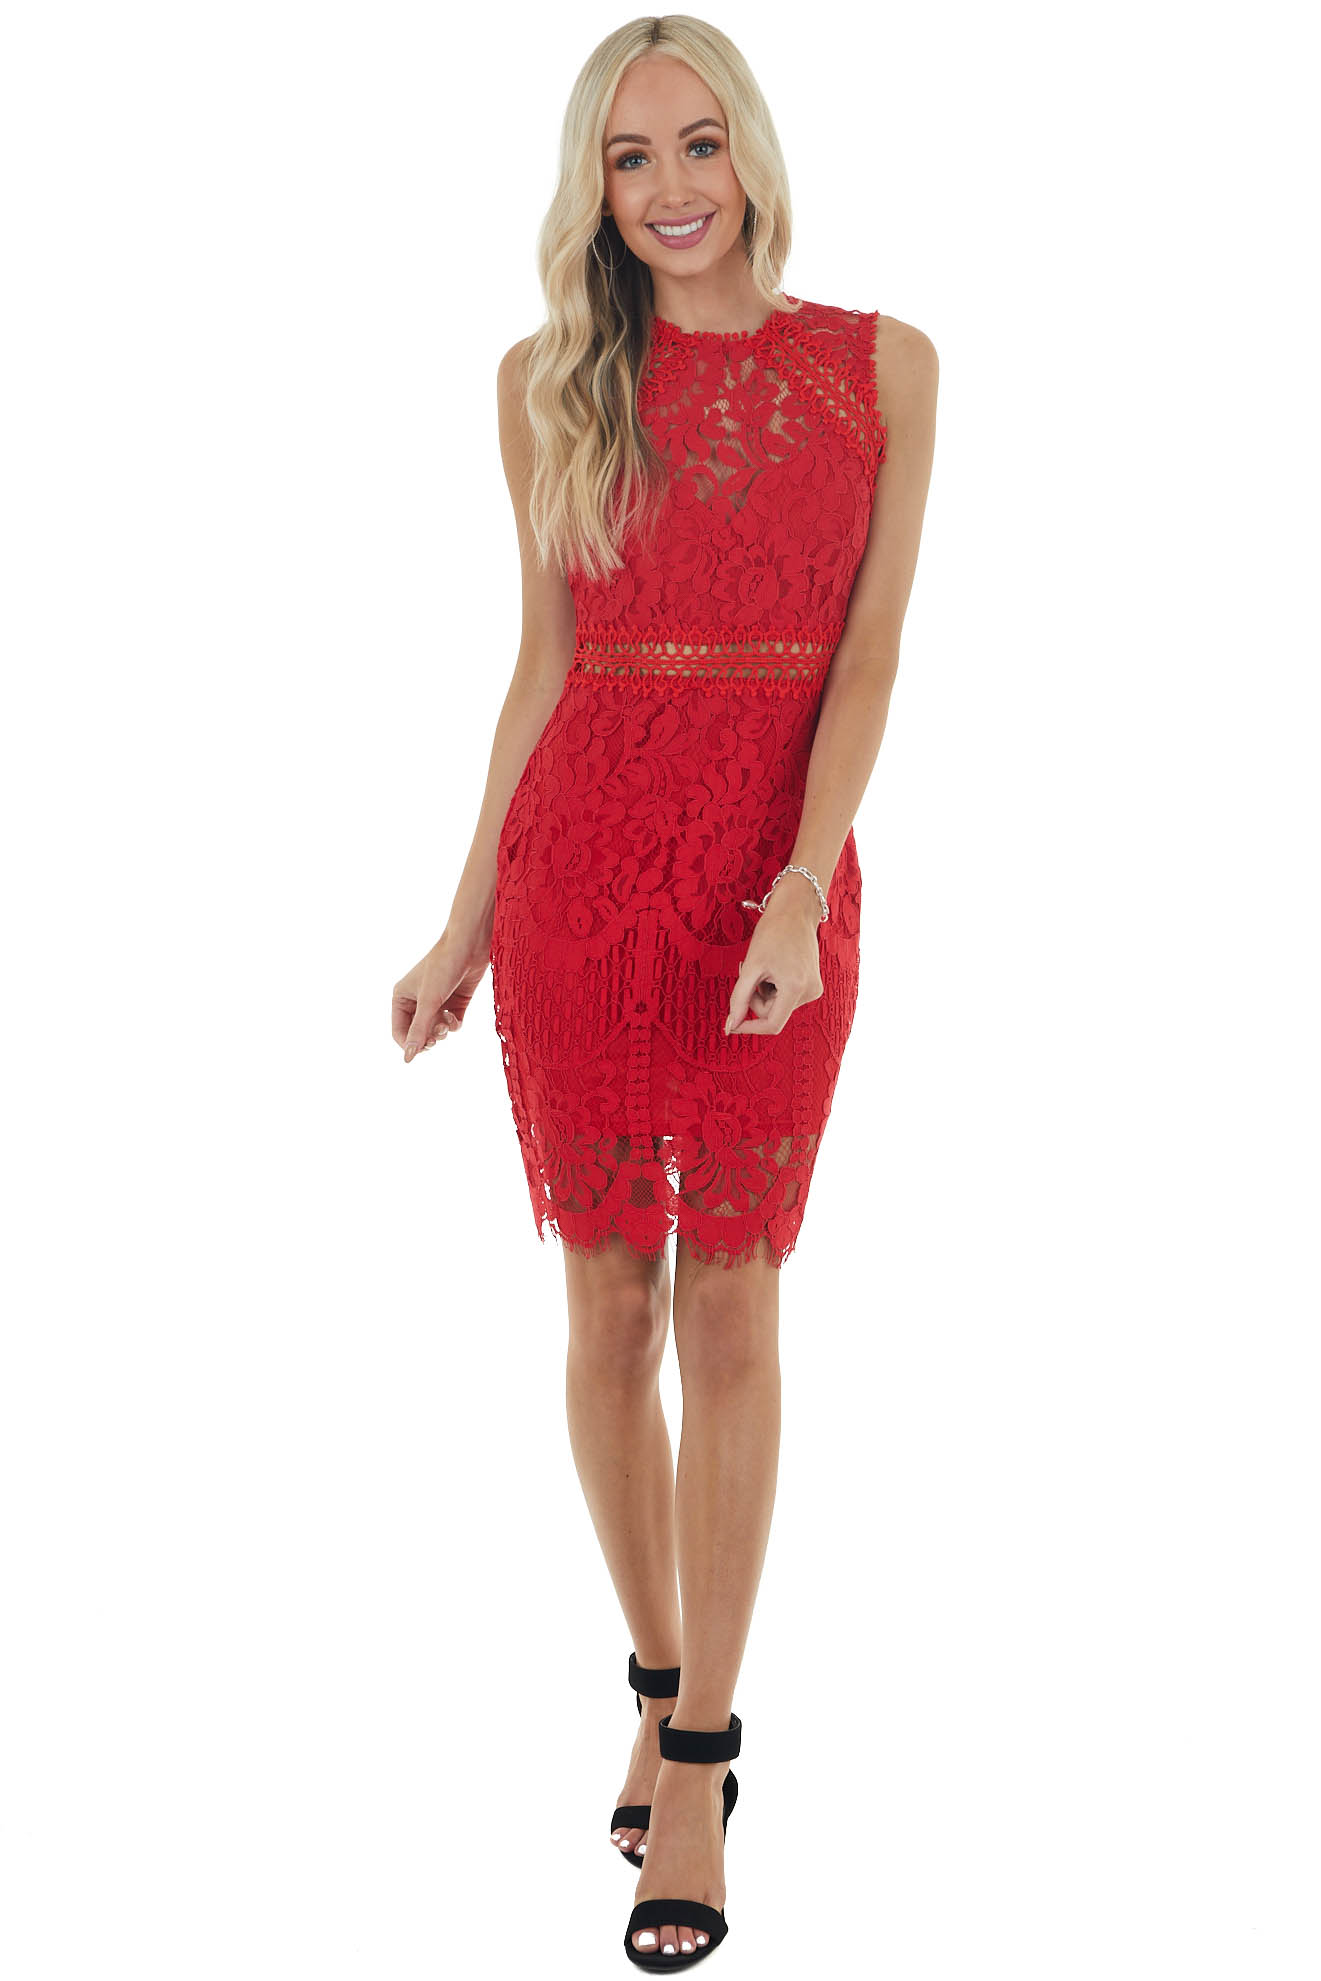 Cherry Lace High Neckline Bodycon Dress with Sheer Details